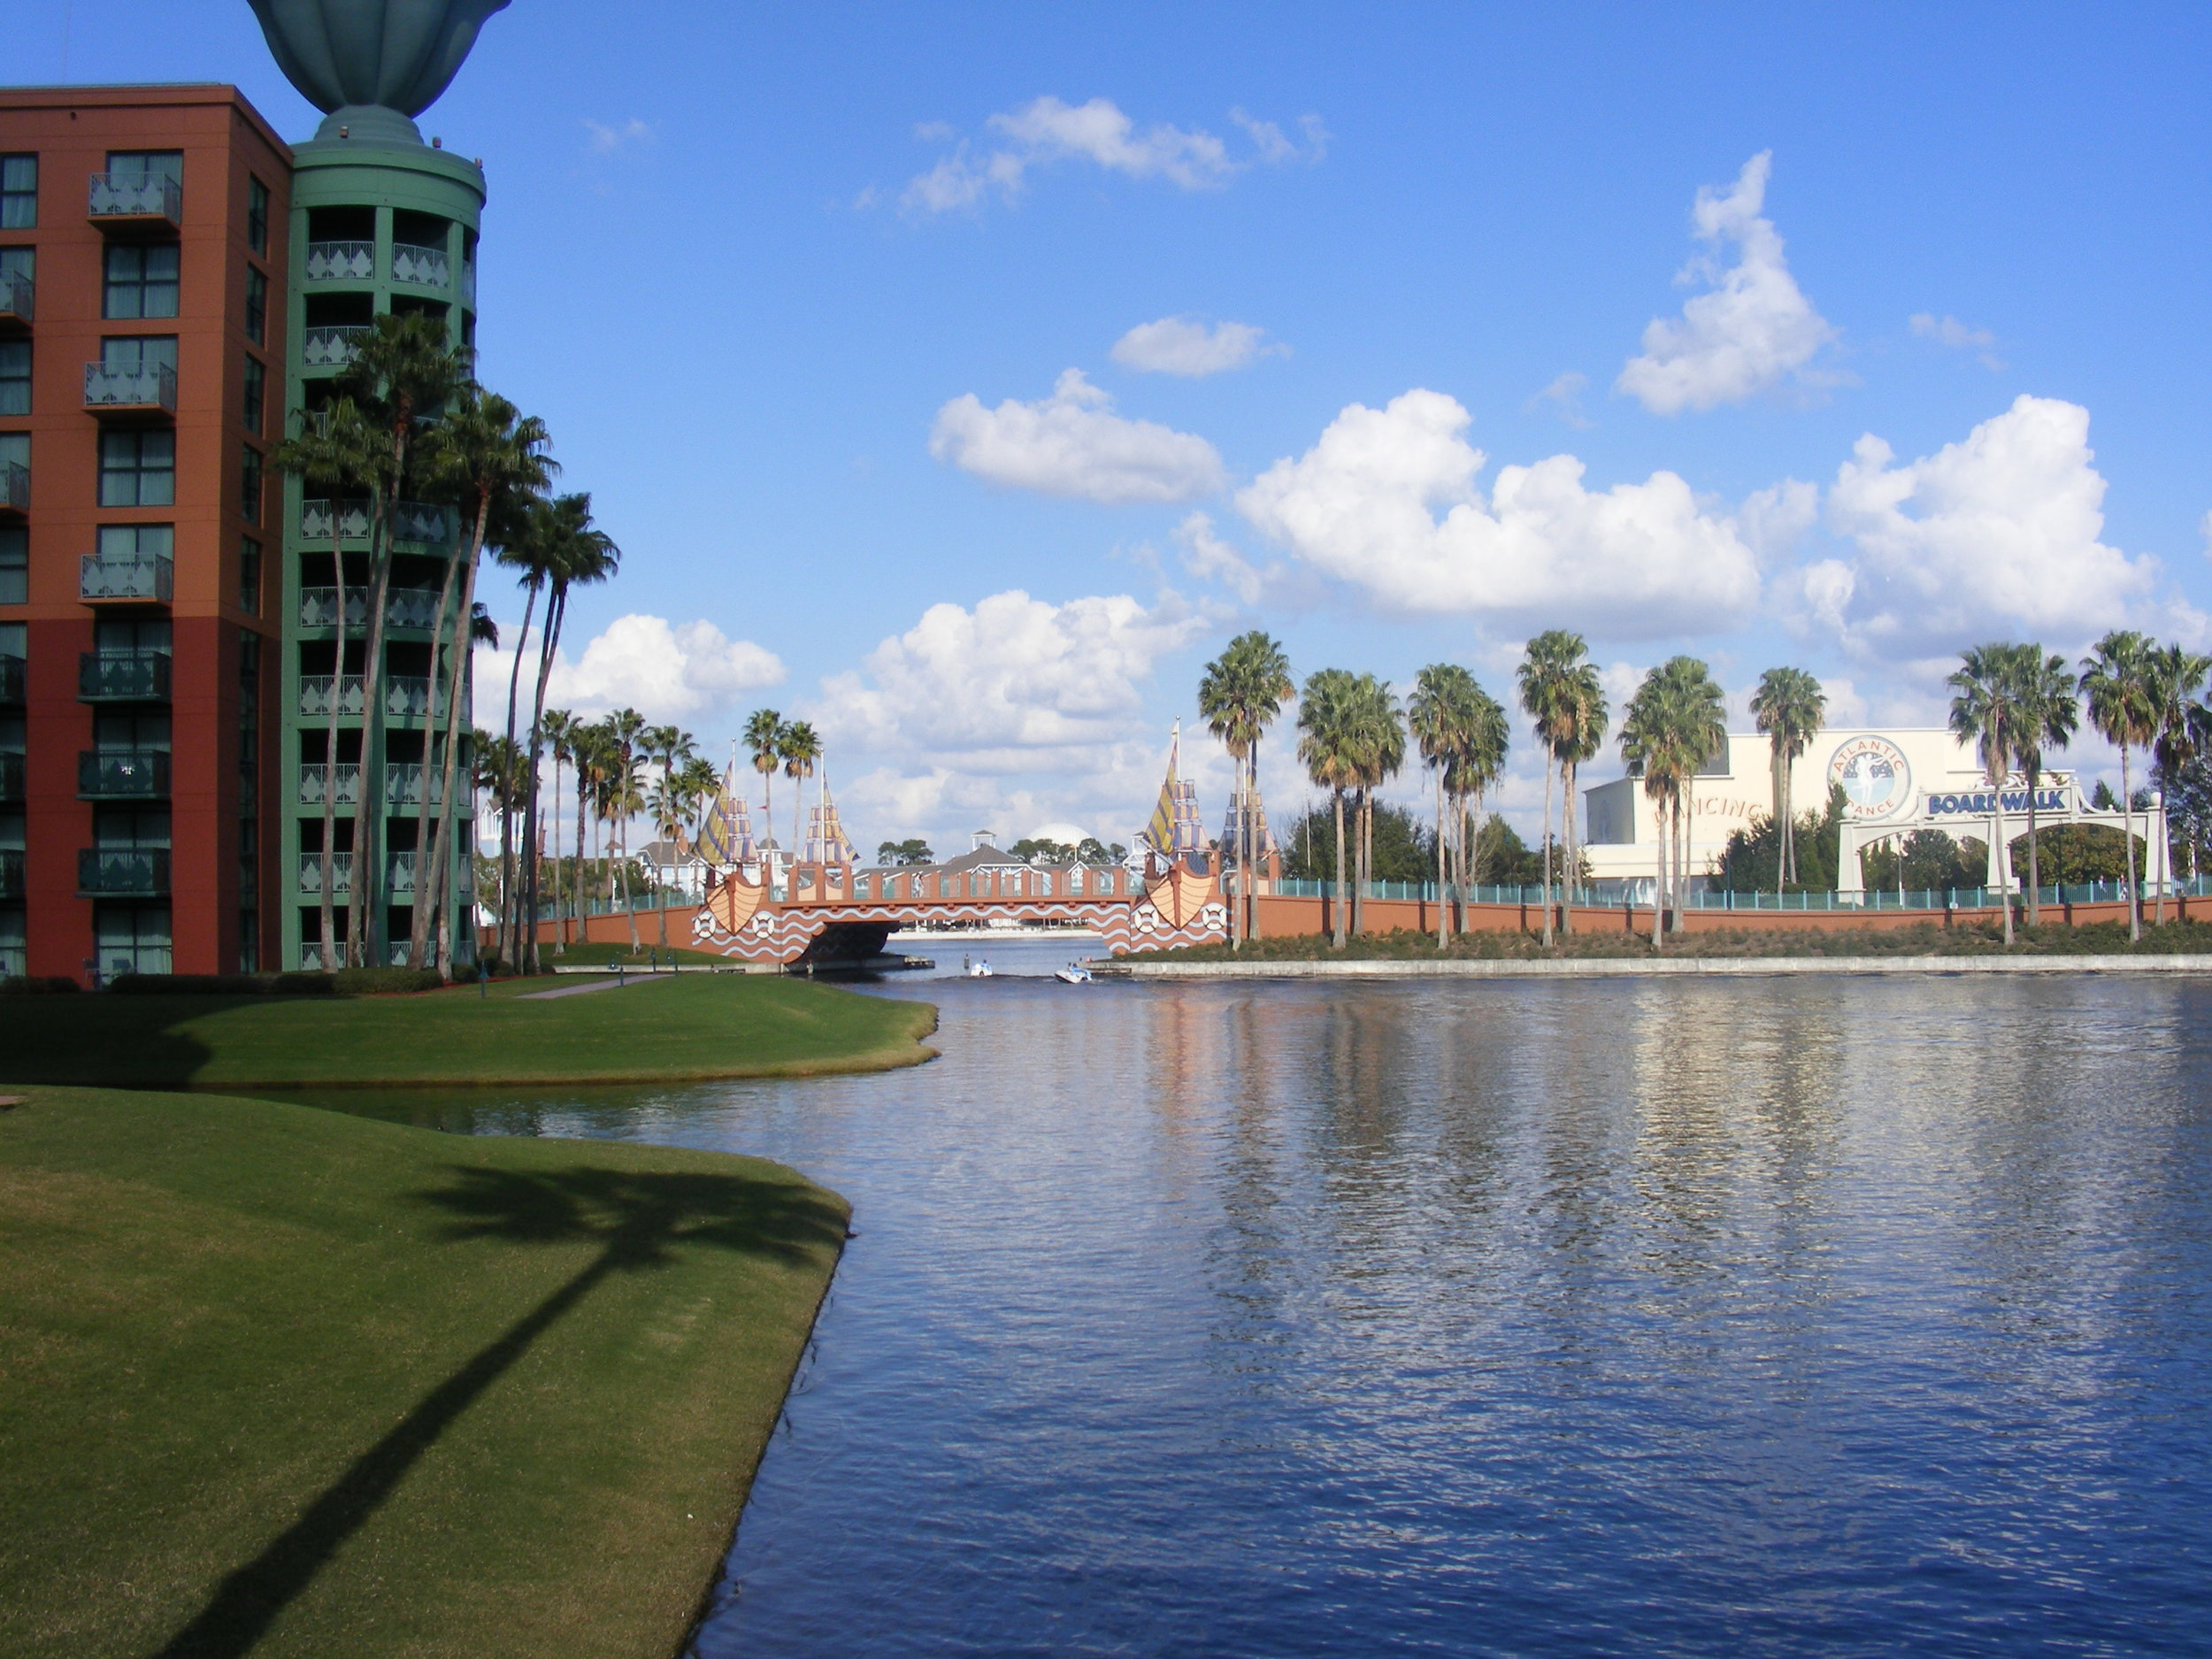 Waterway to Disney's Hollywood Studios, Disney's BoardWalk